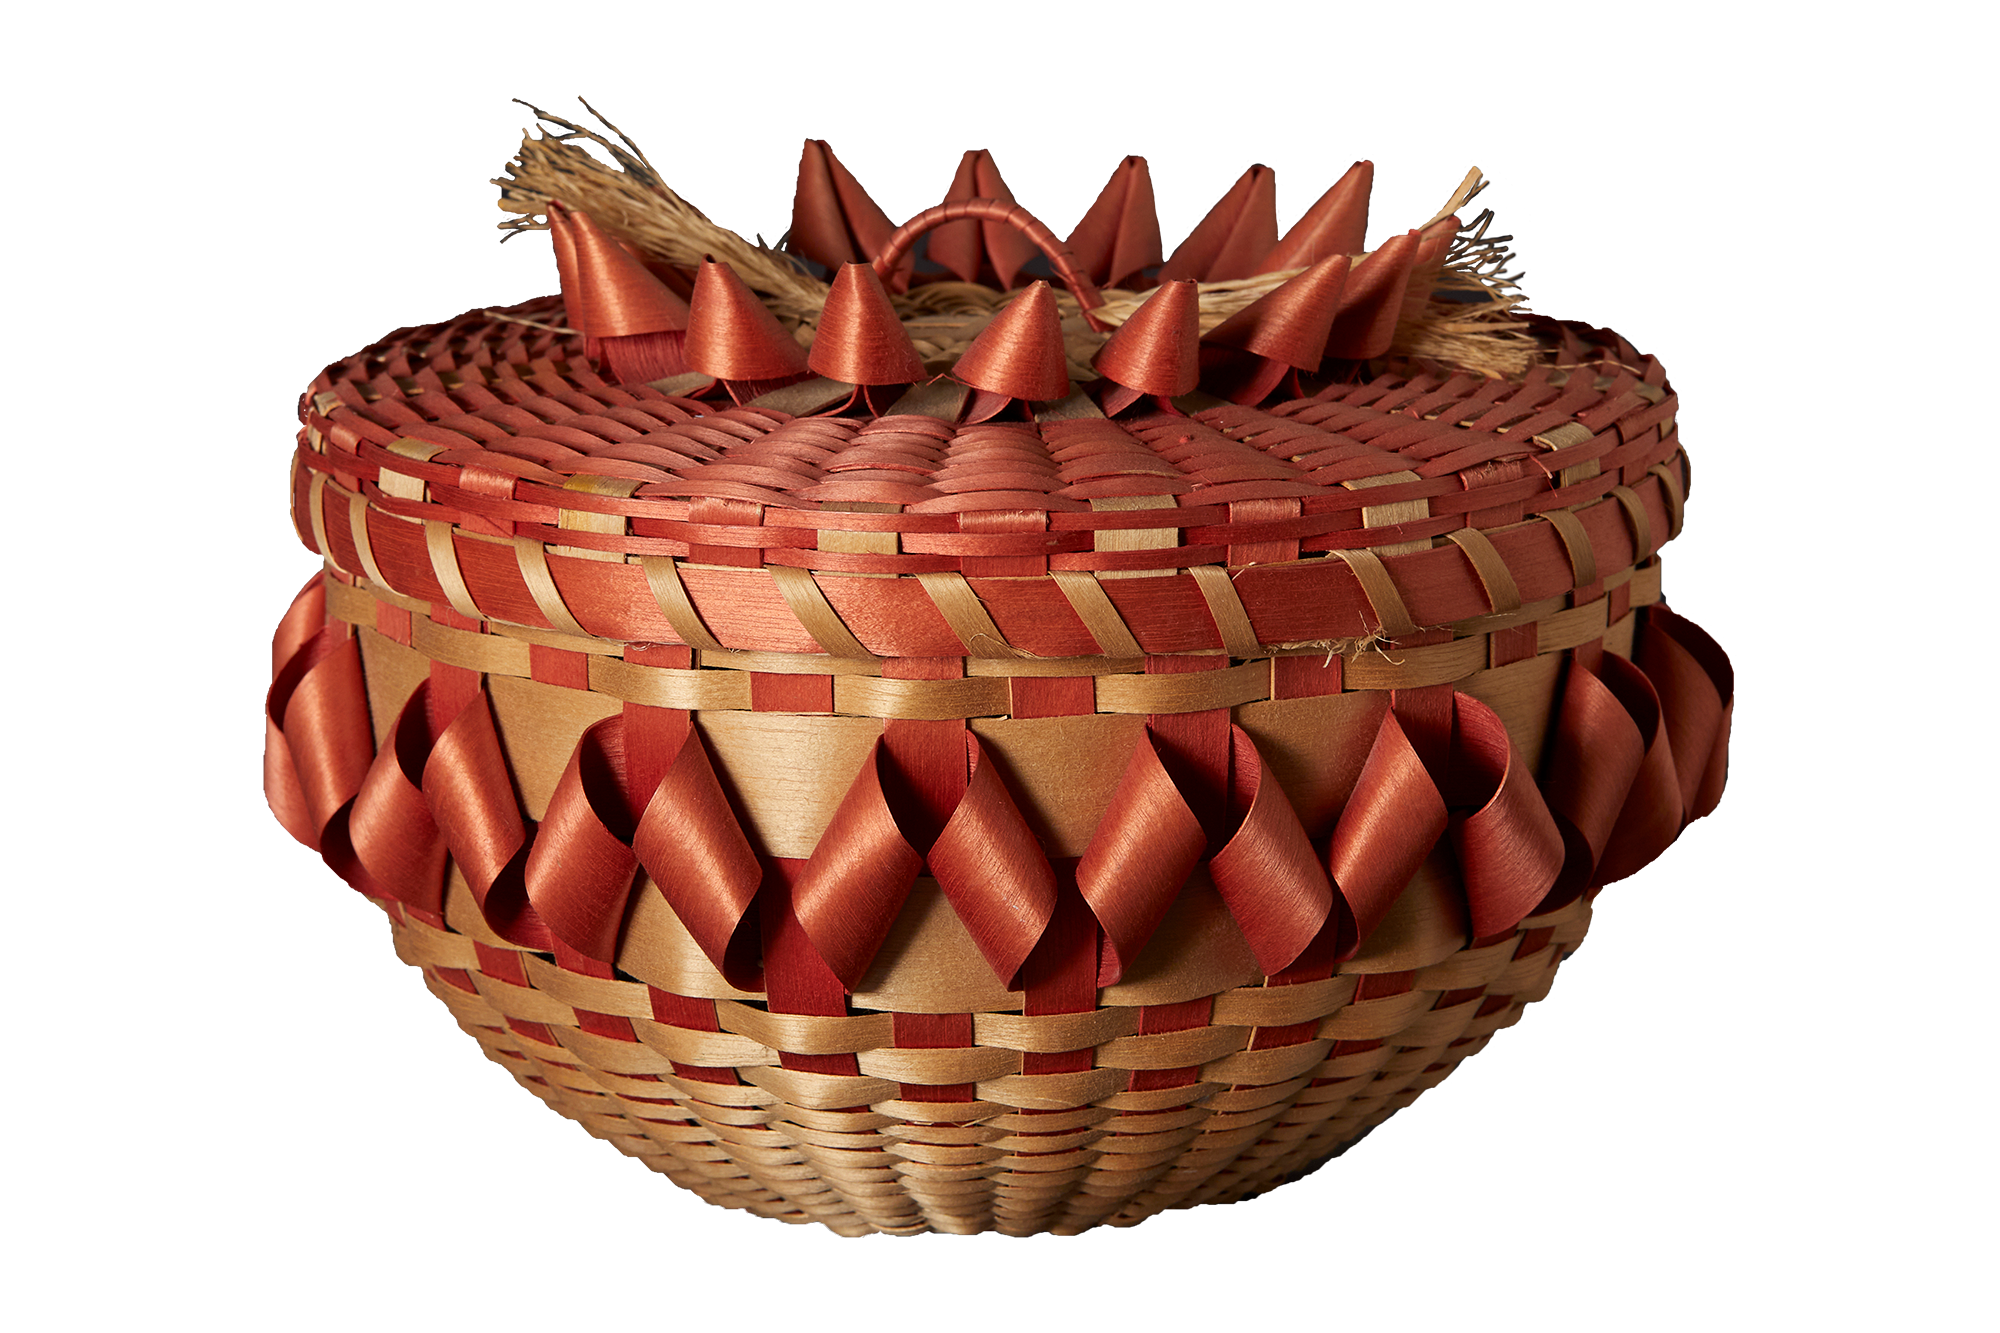 A woven tan and red basket.